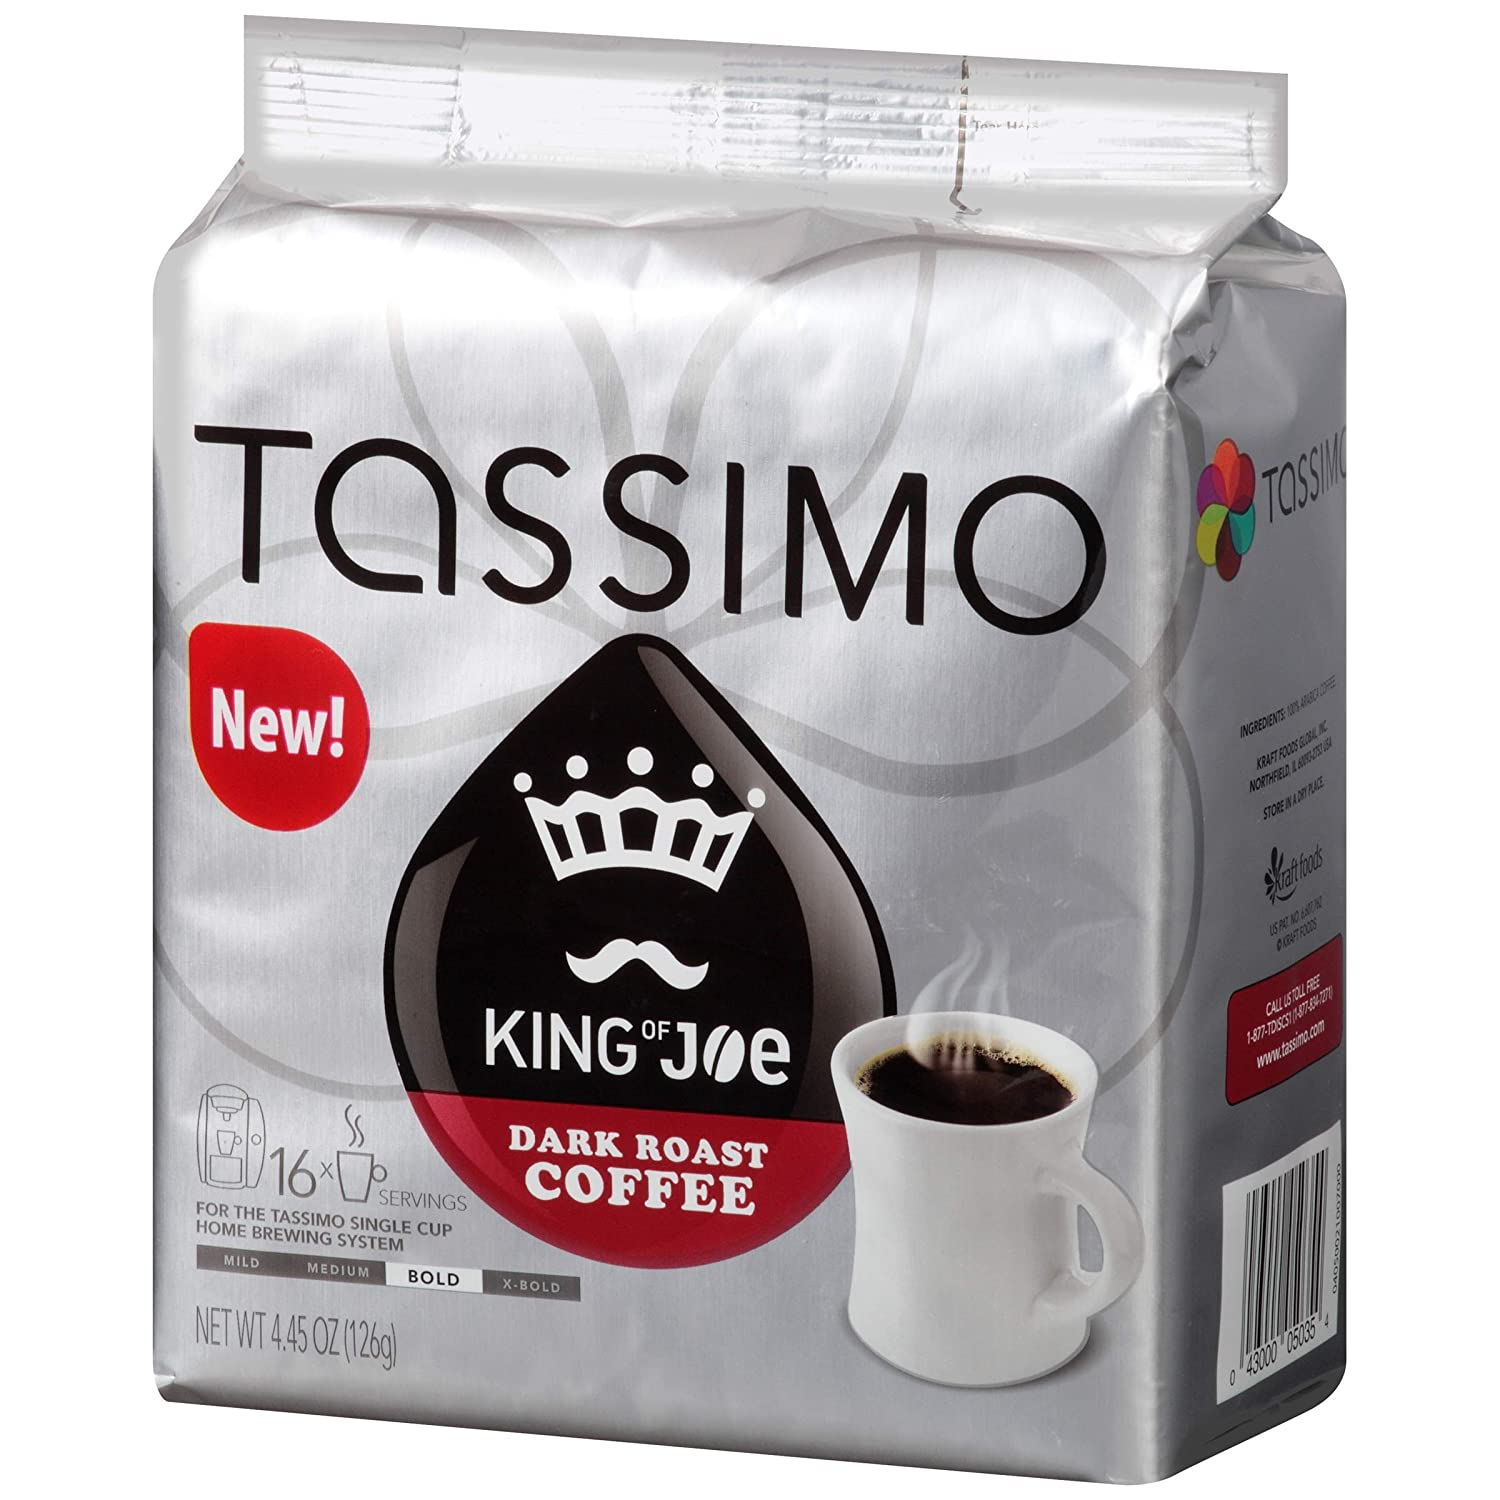 King of Joe Dark Roast Coffee: Amazon.com: Grocery & Gourmet ...